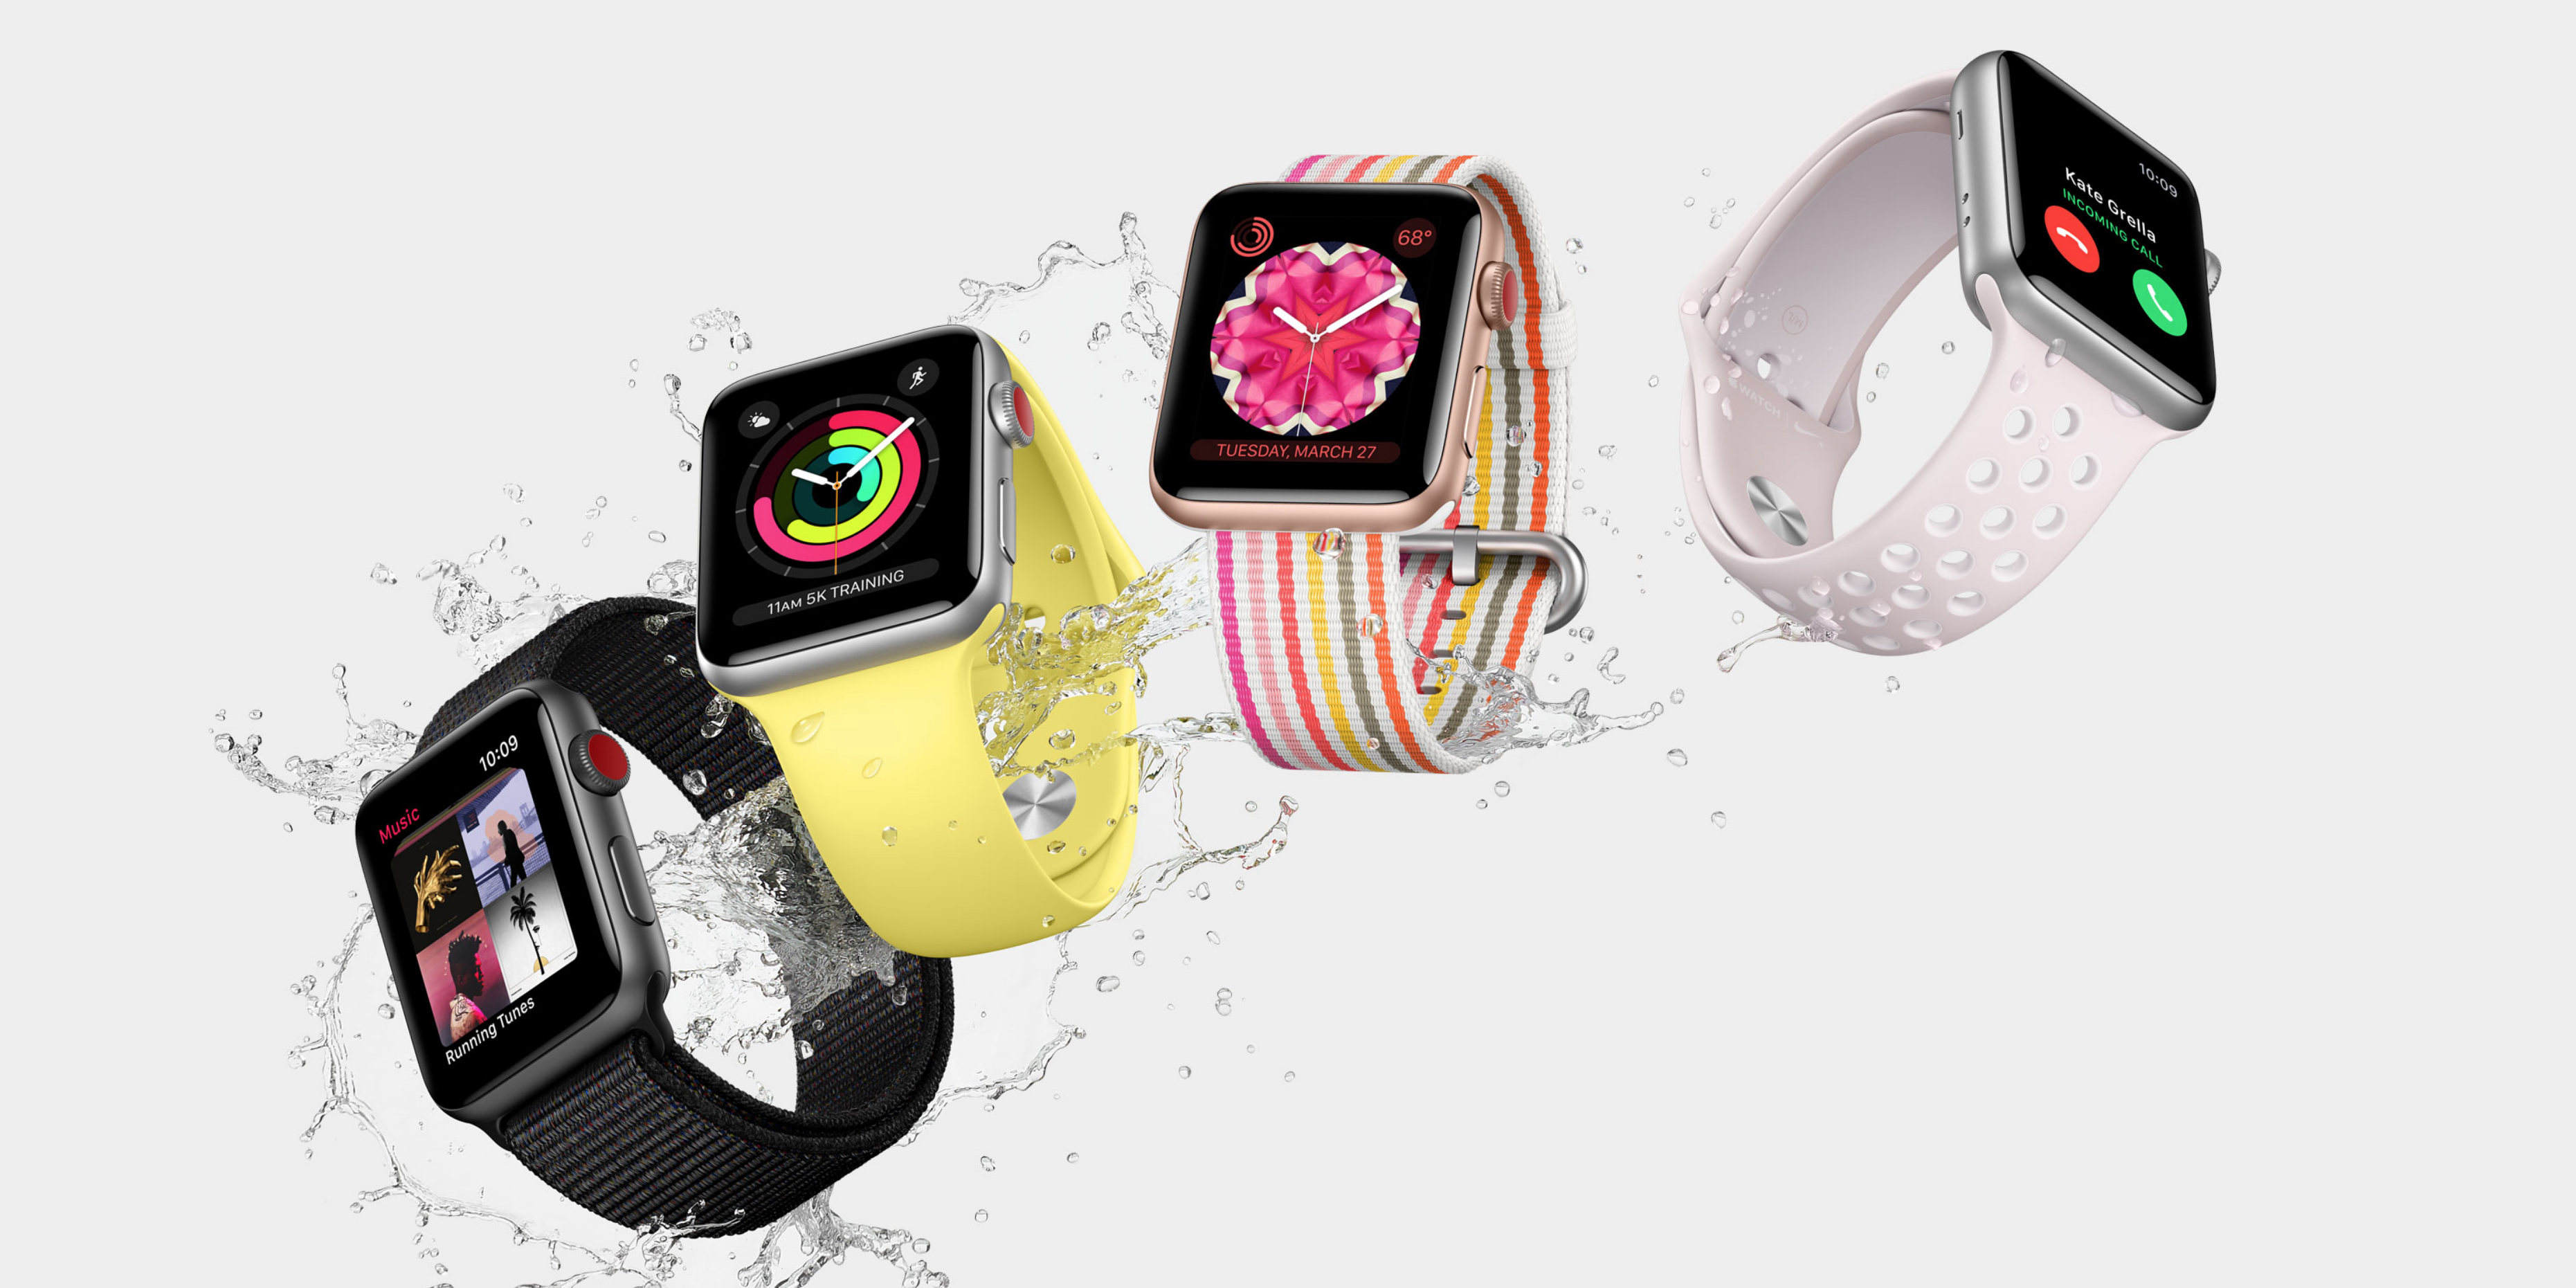 Grab Apple Watch Series 3 at Costco right now from just $310 (Reg. $359)